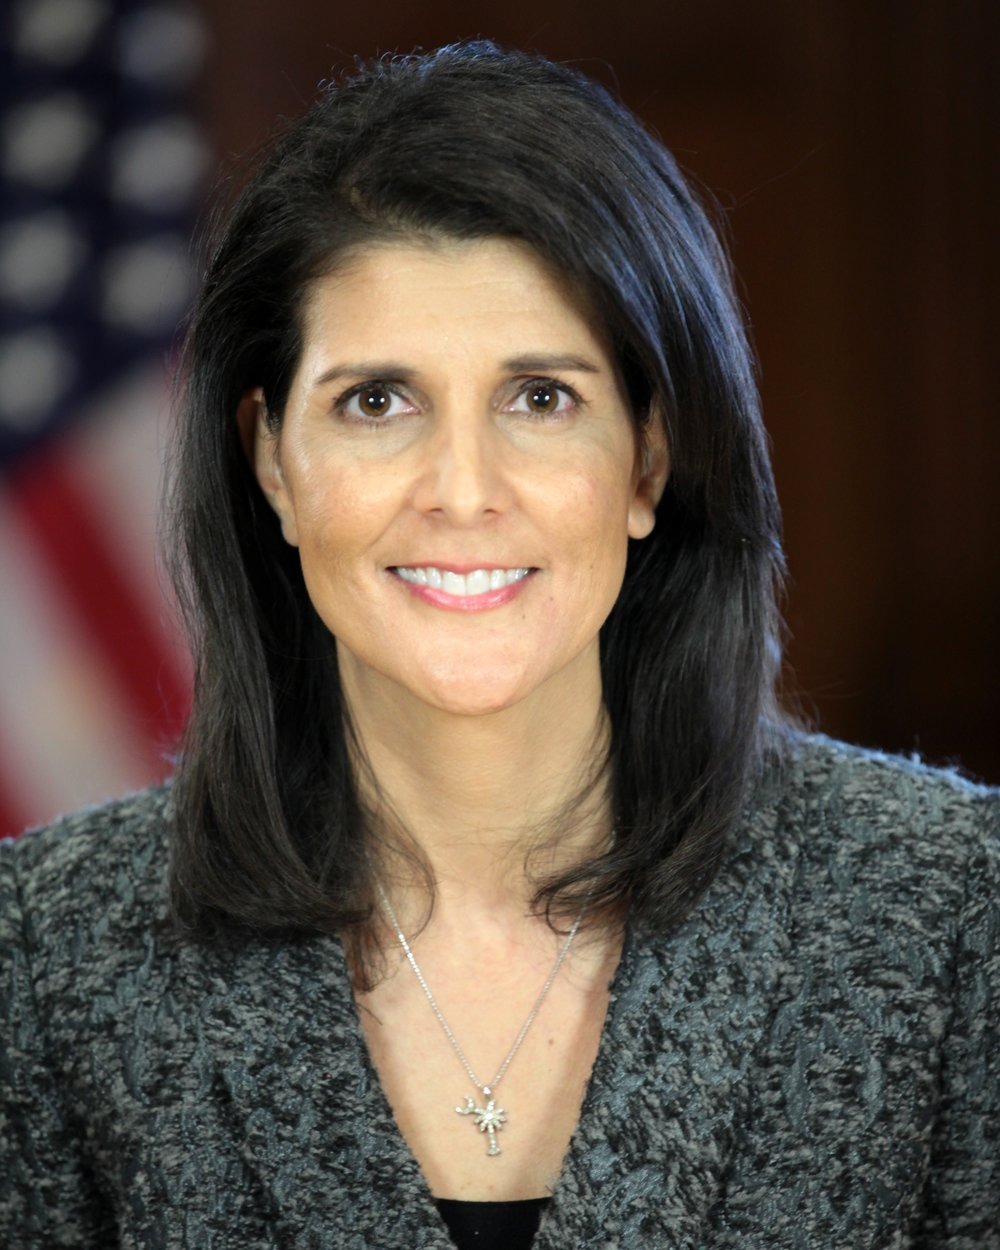 U.S. Ambassador to the U.N. Nikki Haley. Credit: Wikipedia Commons.